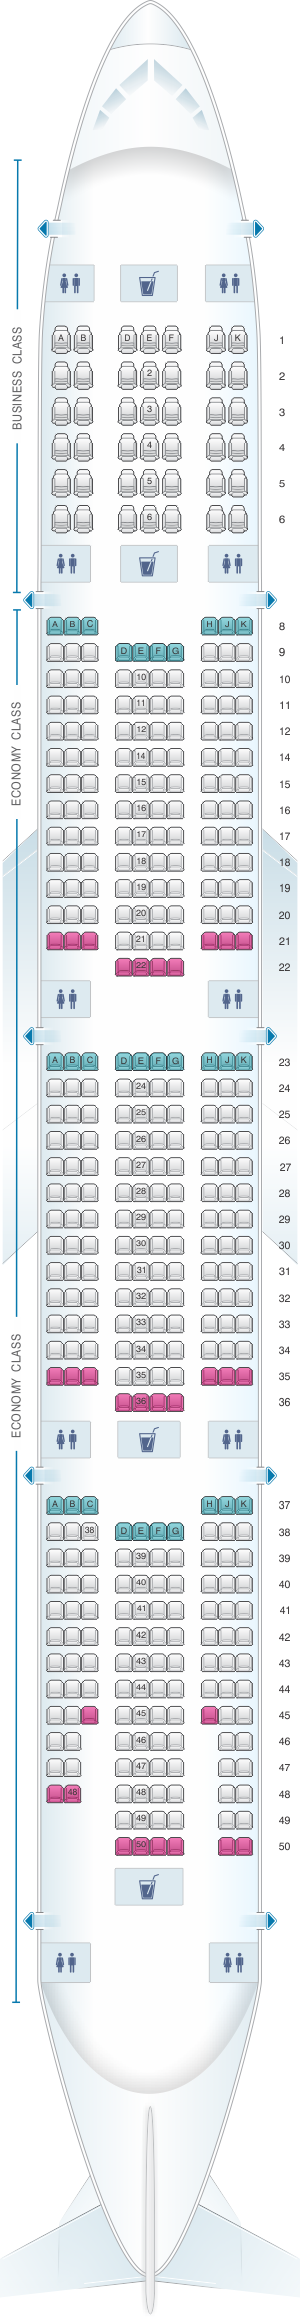 Seat map for Emirates Boeing B777 300ER two class